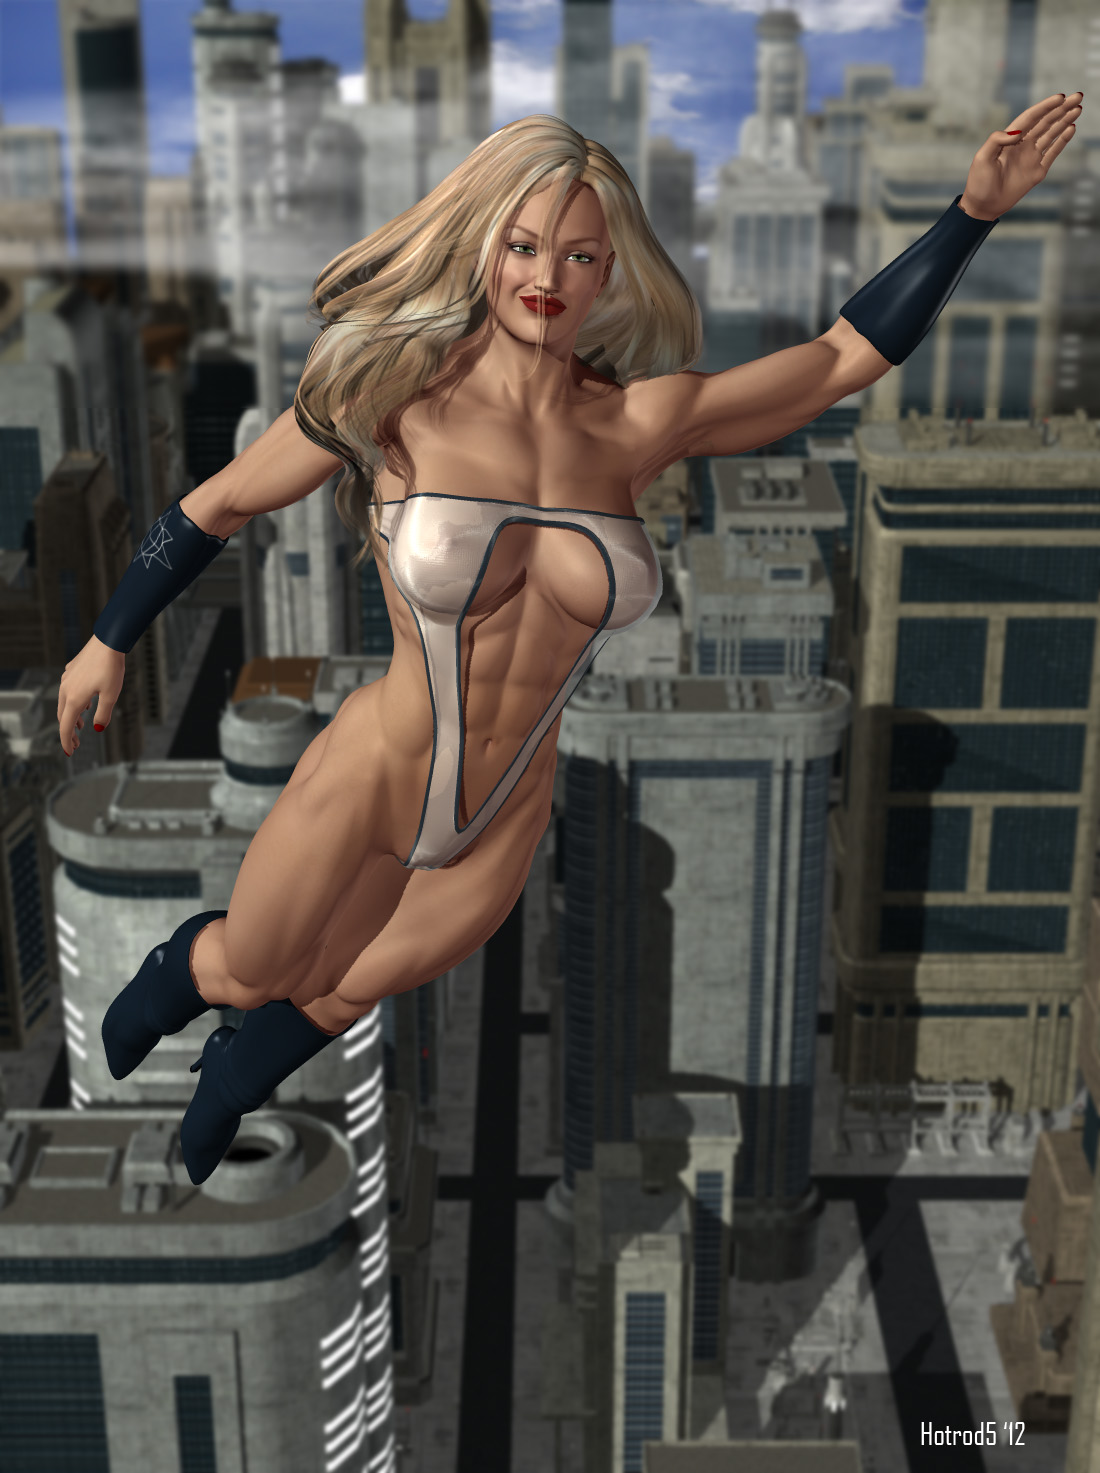 Ultrawoman: Diamond in the Sky by hotrod5